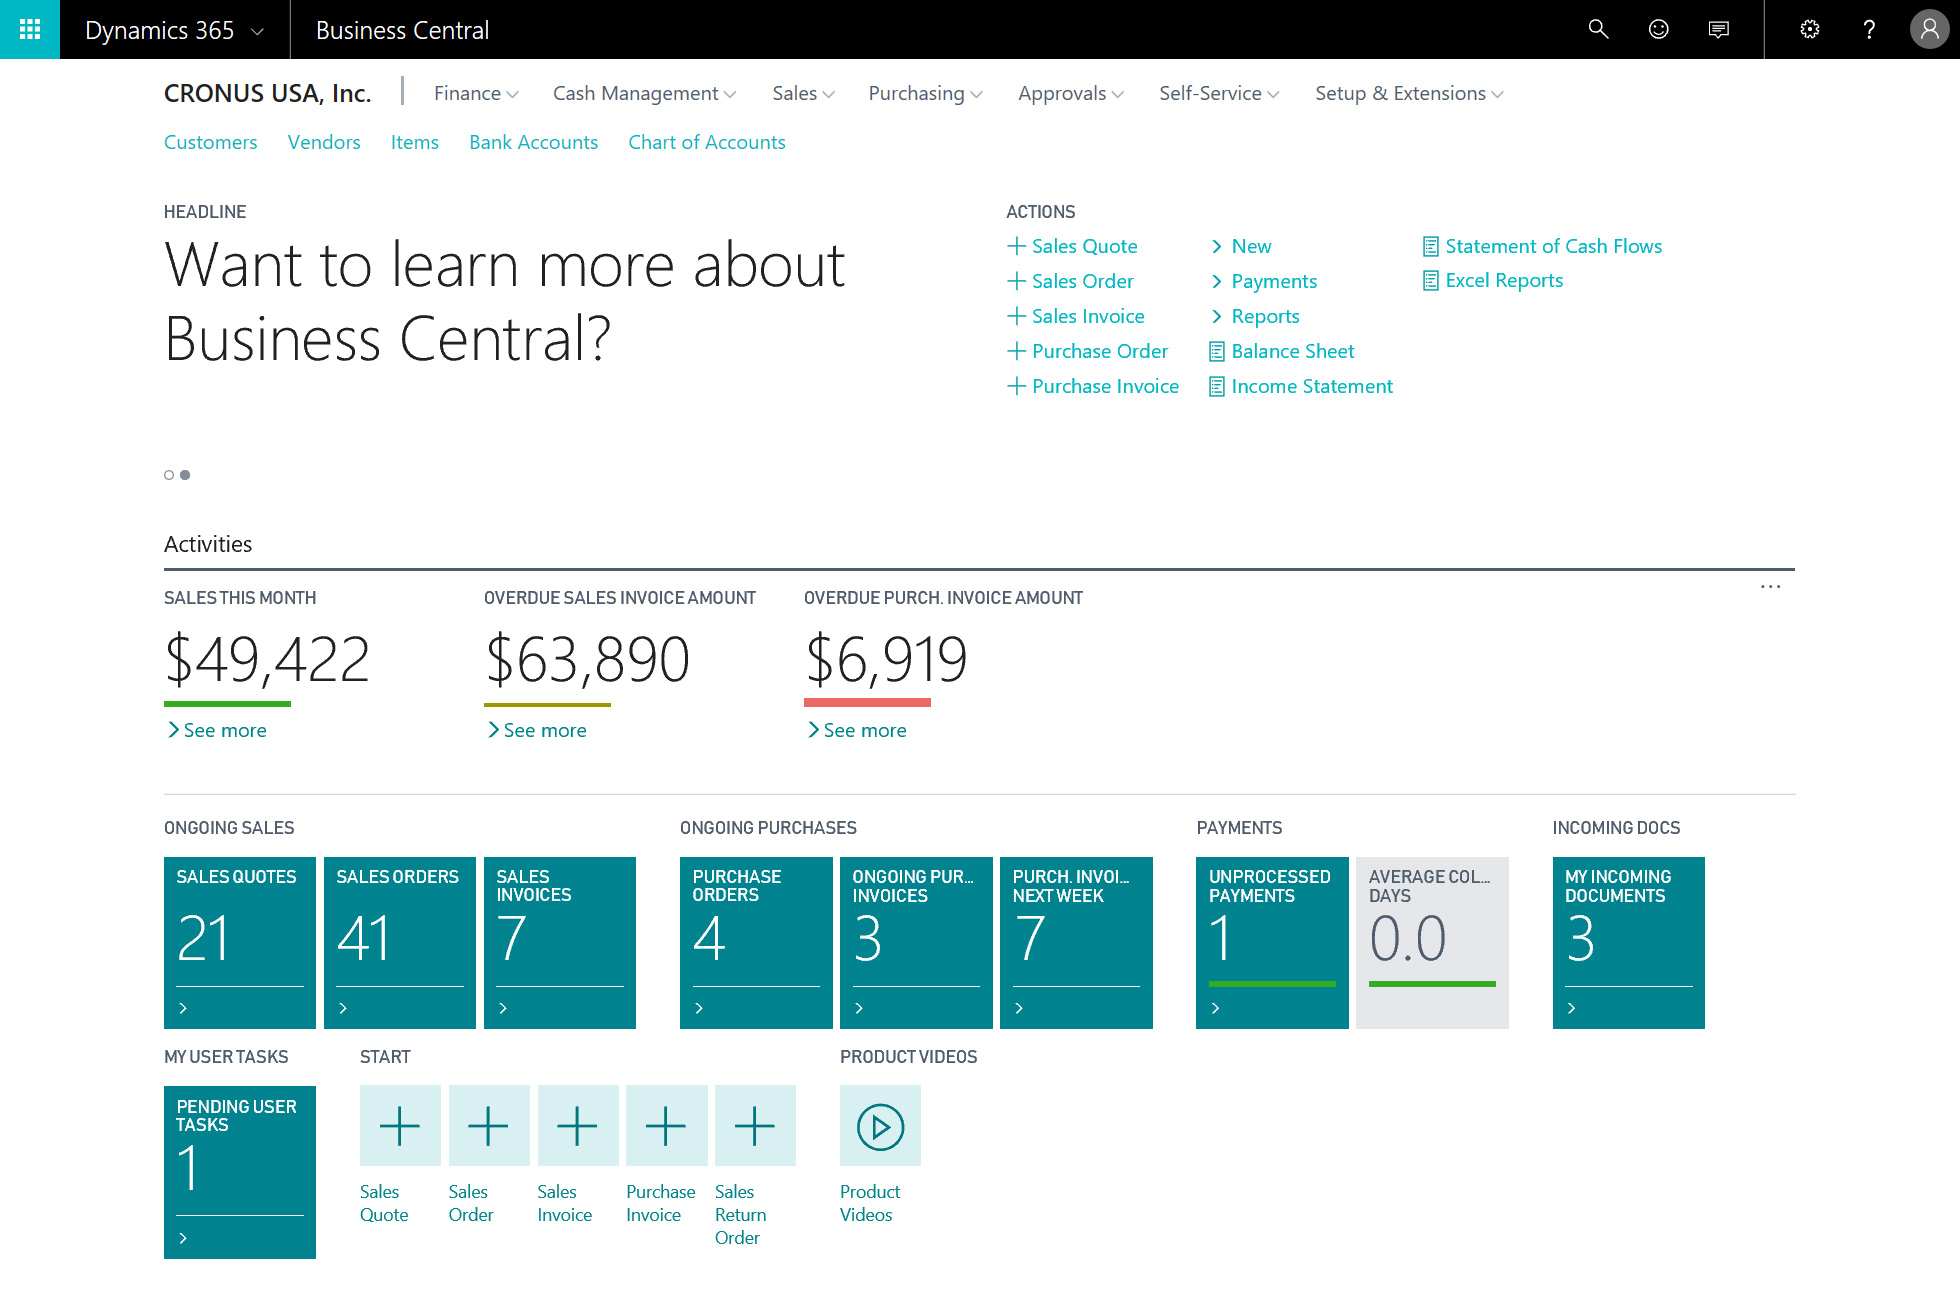 User interface of Microsoft Dynamics 365 Business Central - COSMO CONSULT